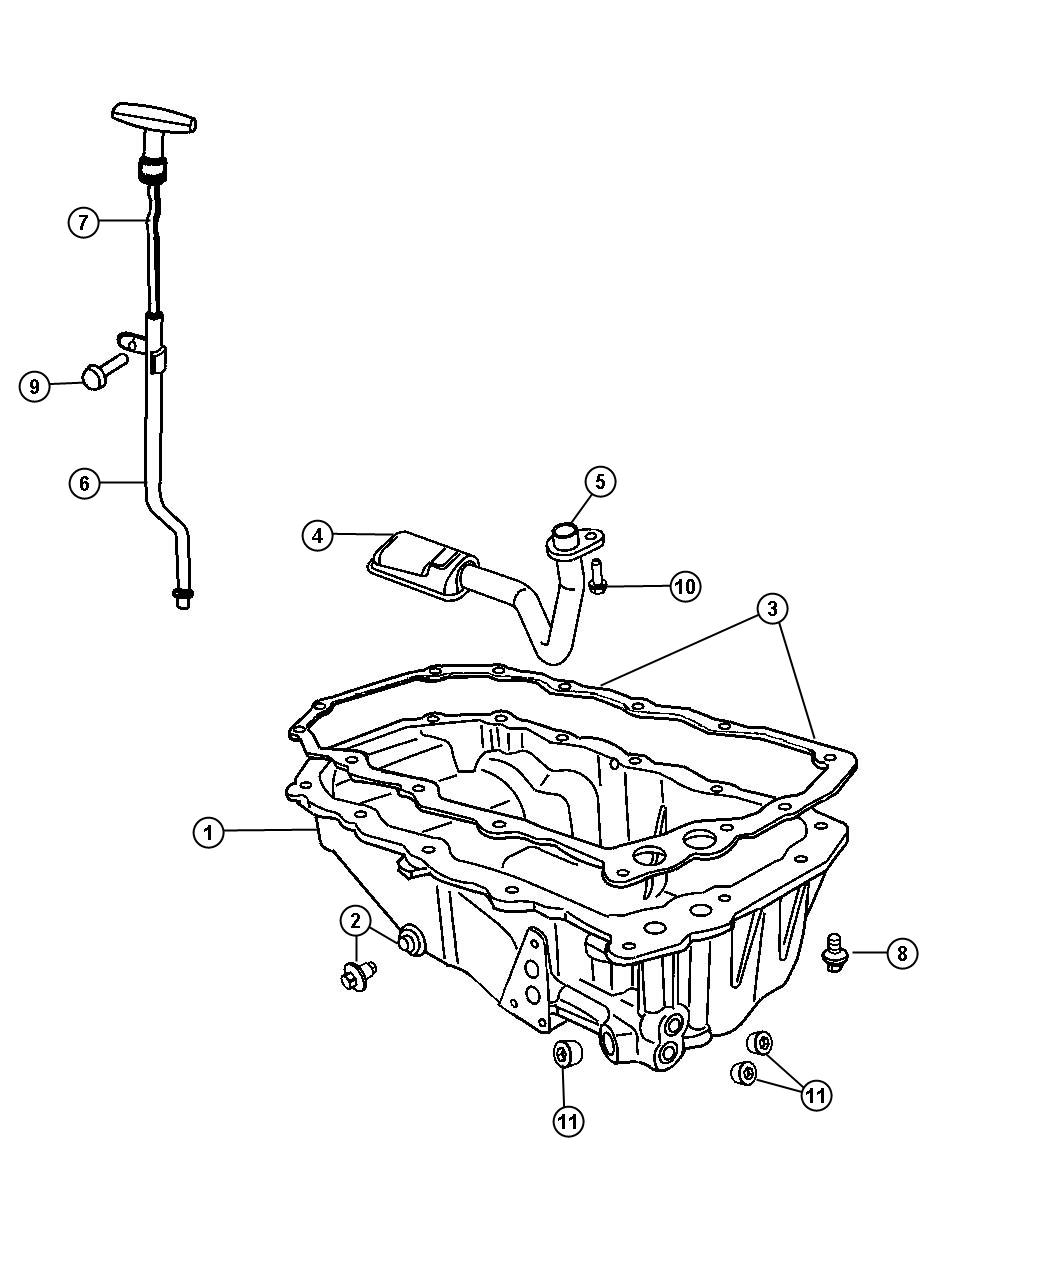 Engine Oil Pan, Engine Oil level Indicator And Related Parts 2.4L [2.4L I4 DOHC 16V SMPI Engine]. Diagram